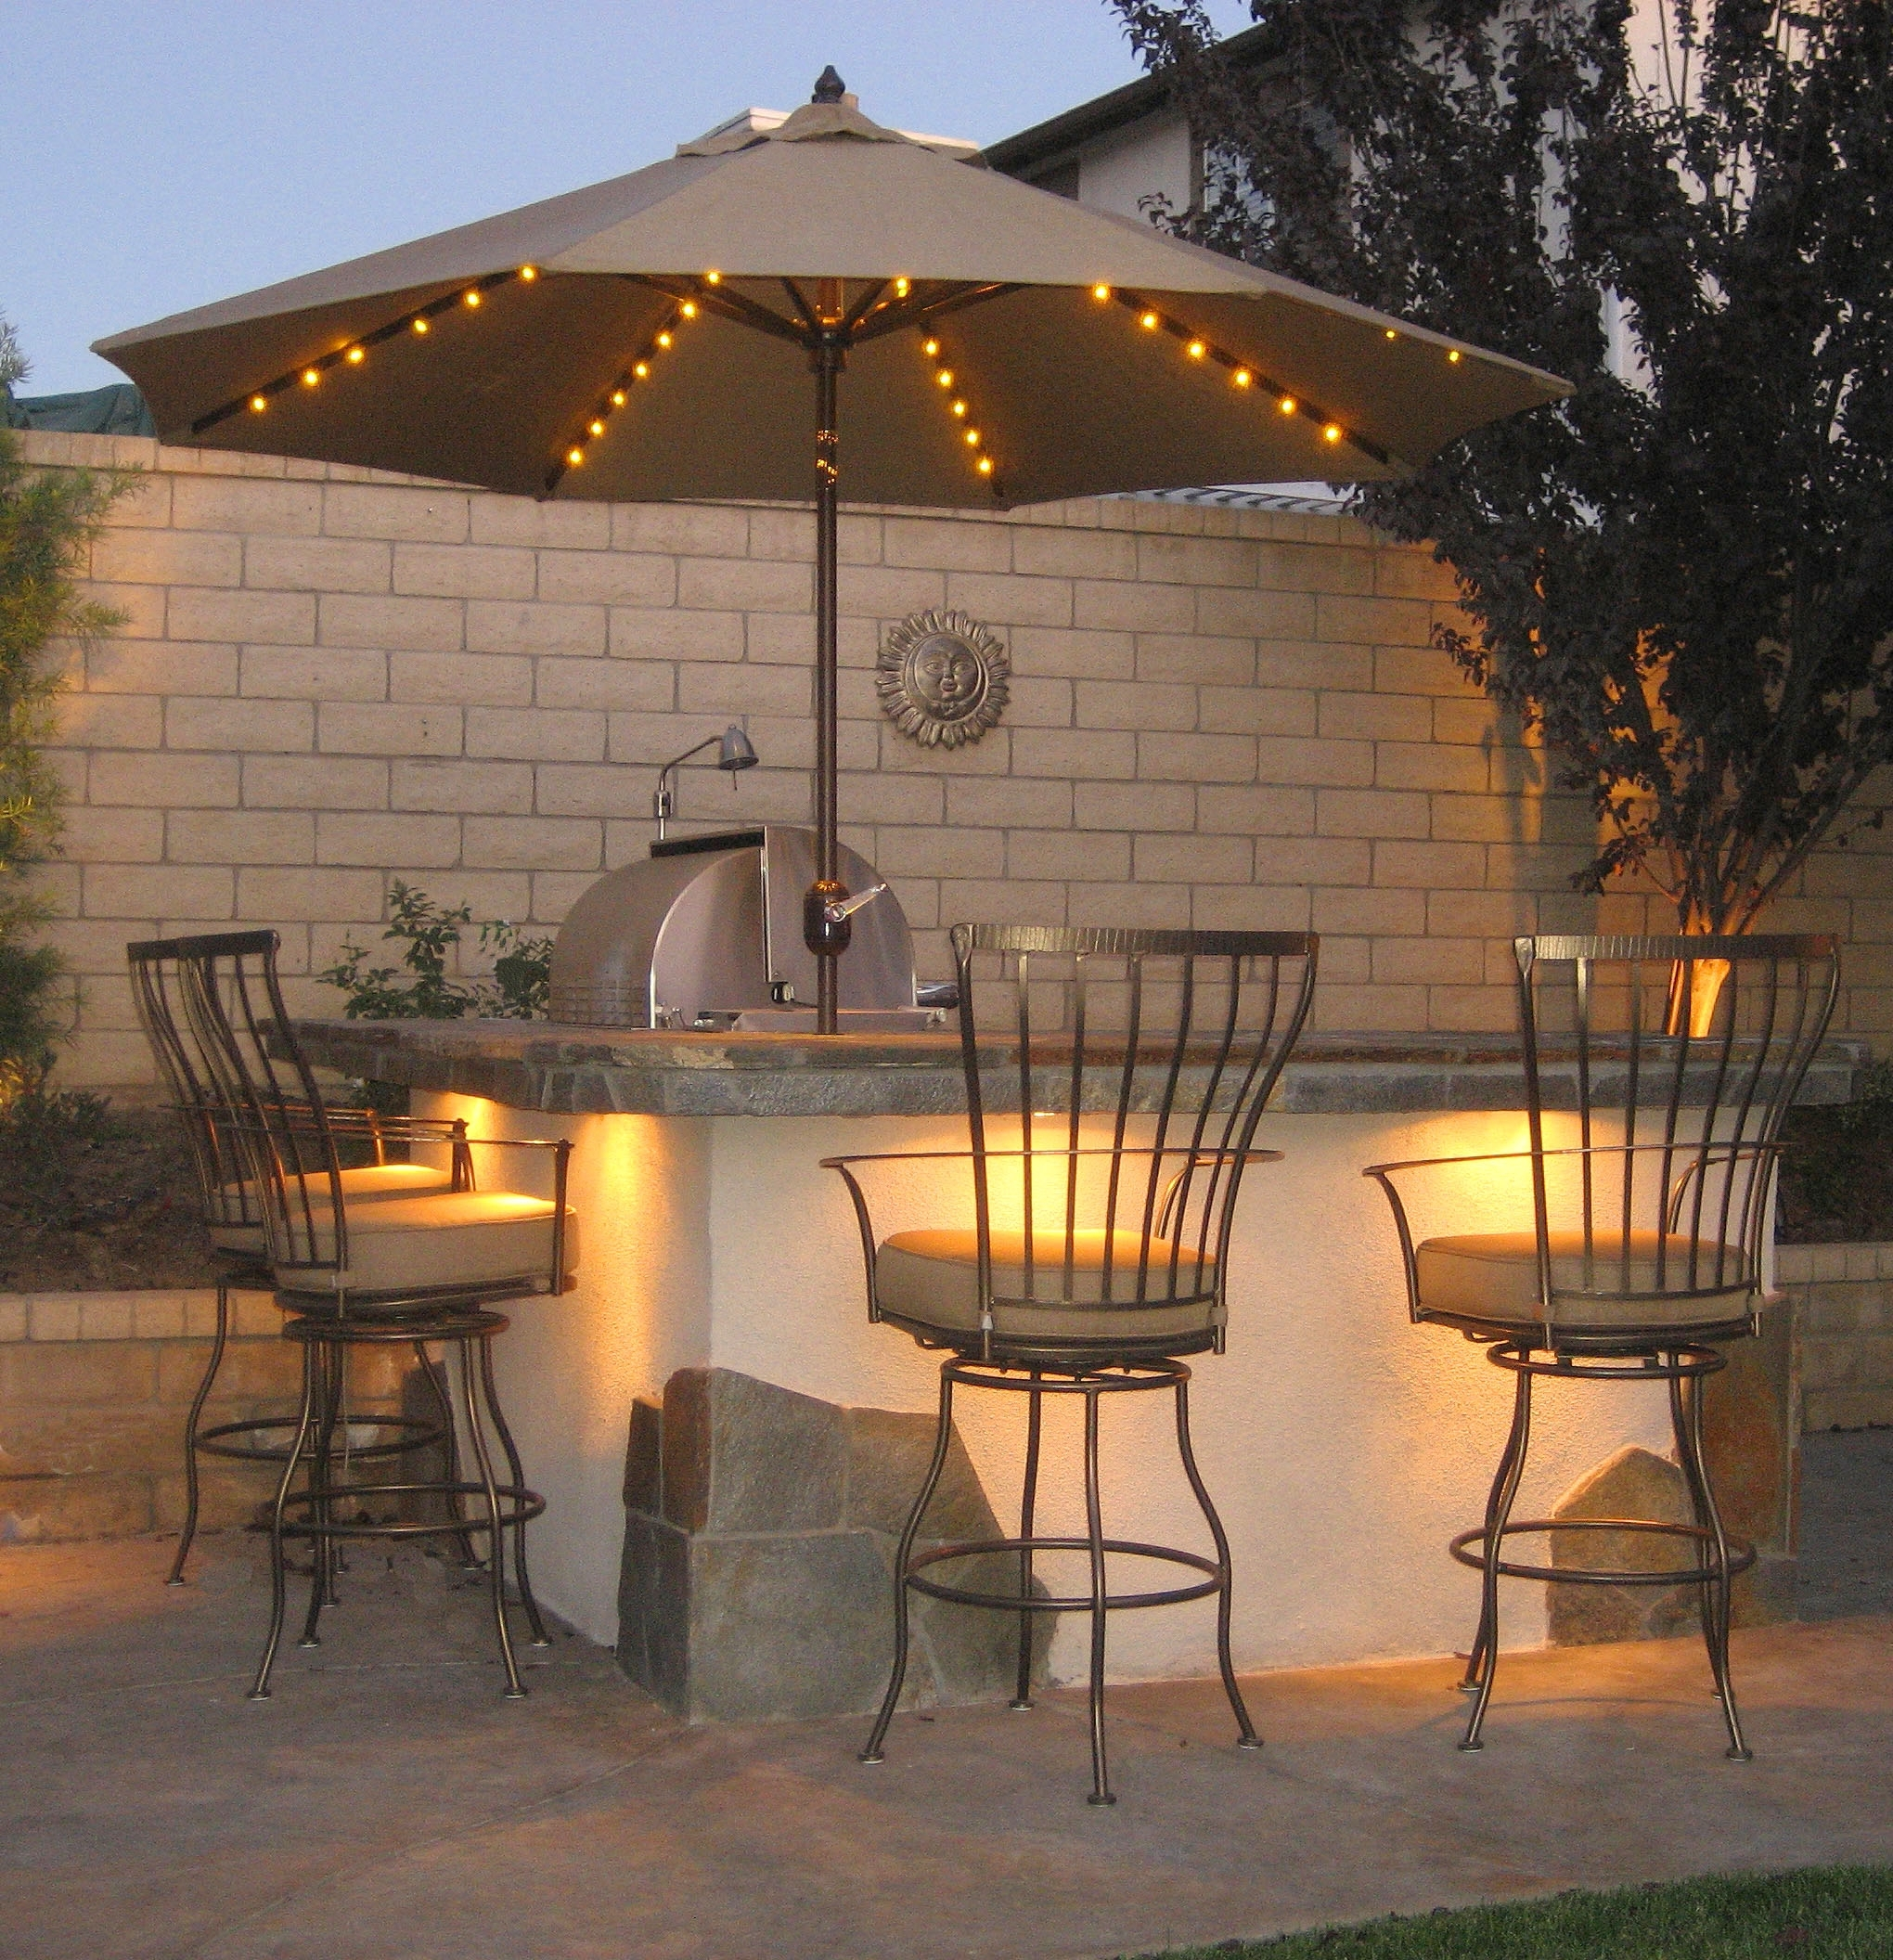 Newest Lighted Umbrellas For Patio With Regard To Lighted Patio Umbrellas — Mistikcamping Home Design : Different (View 11 of 20)